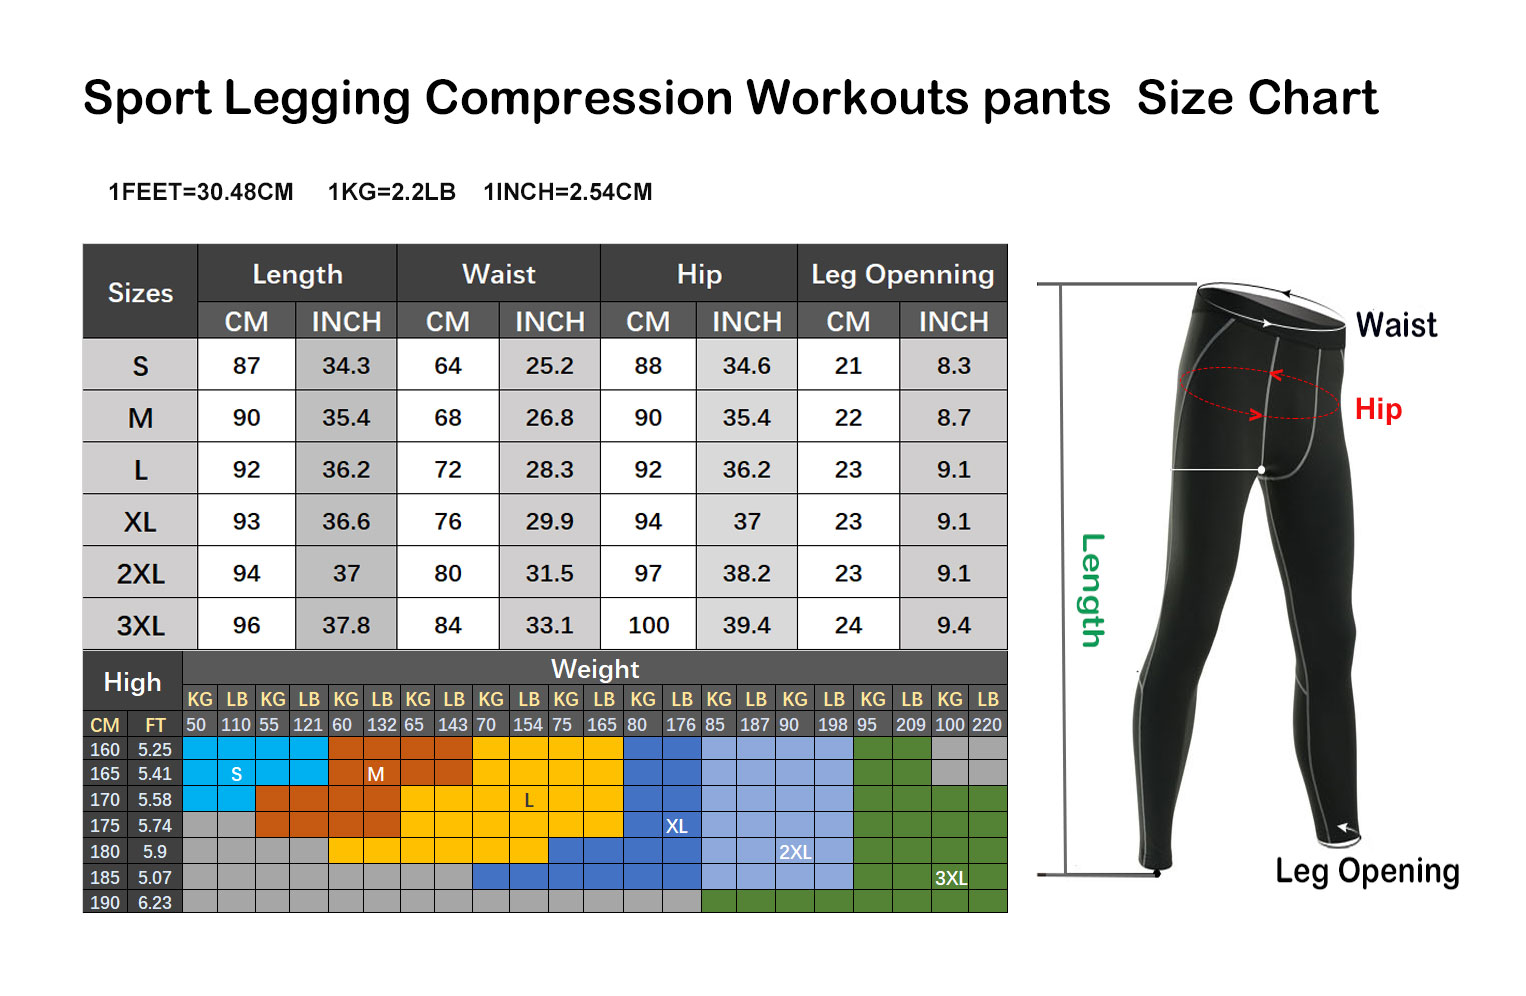 Yoga Legging Compression Workouts Pants Size Chart